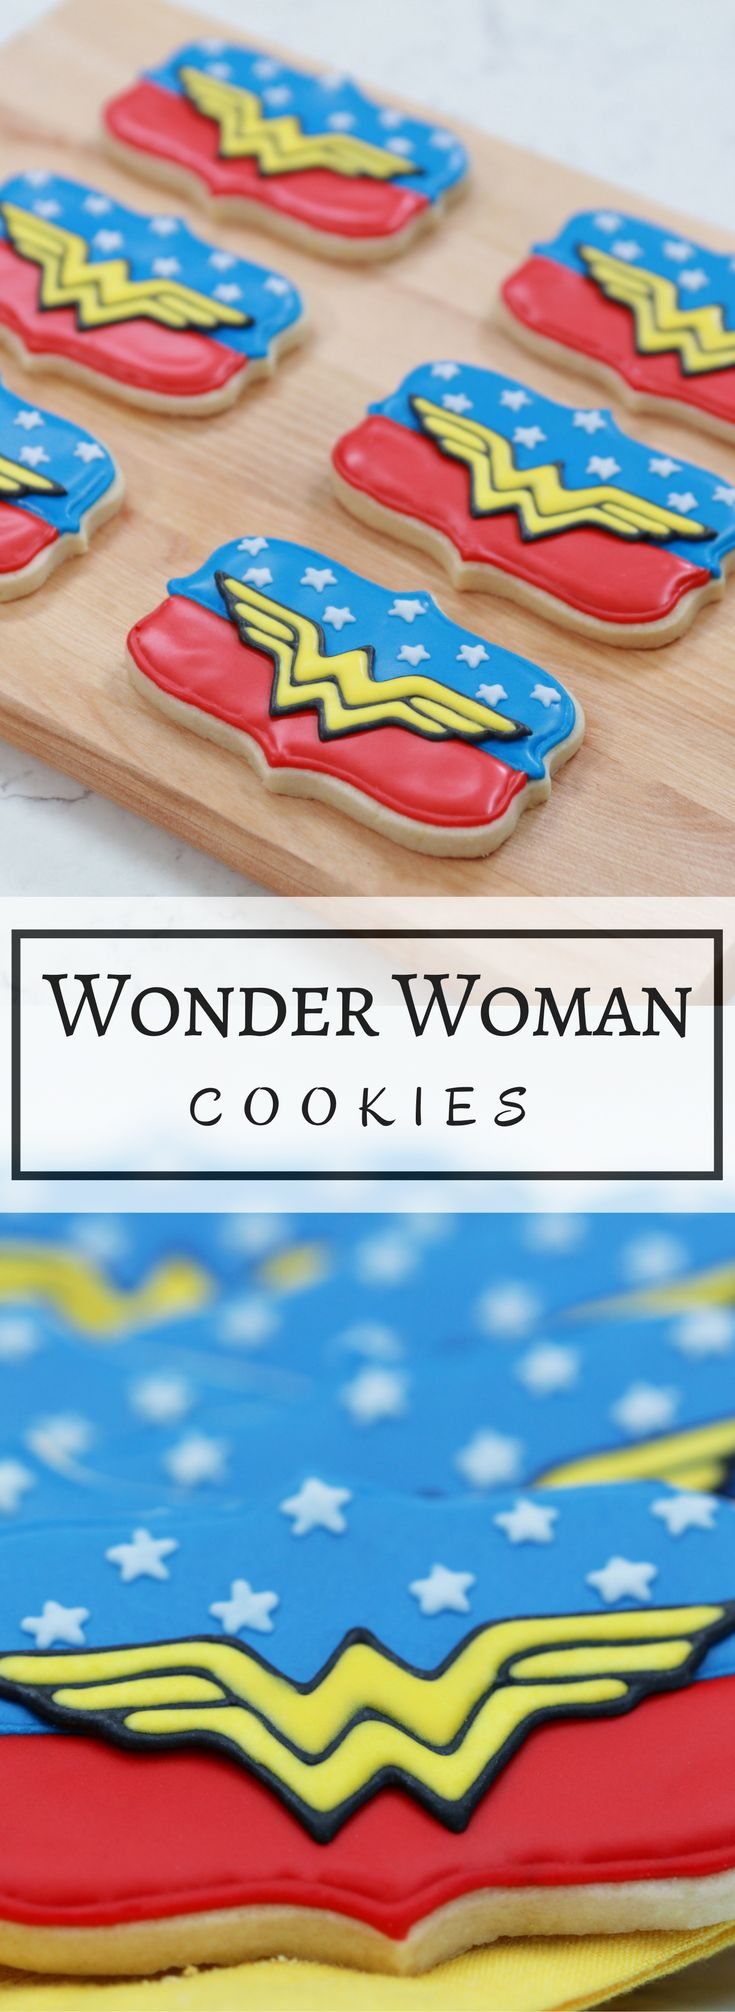 A dairy free lemon sugar cookie made from scratch and decorated to look like the Wonder Woman insignia! Save the day with these wondrous Wonder Woman Cookies!